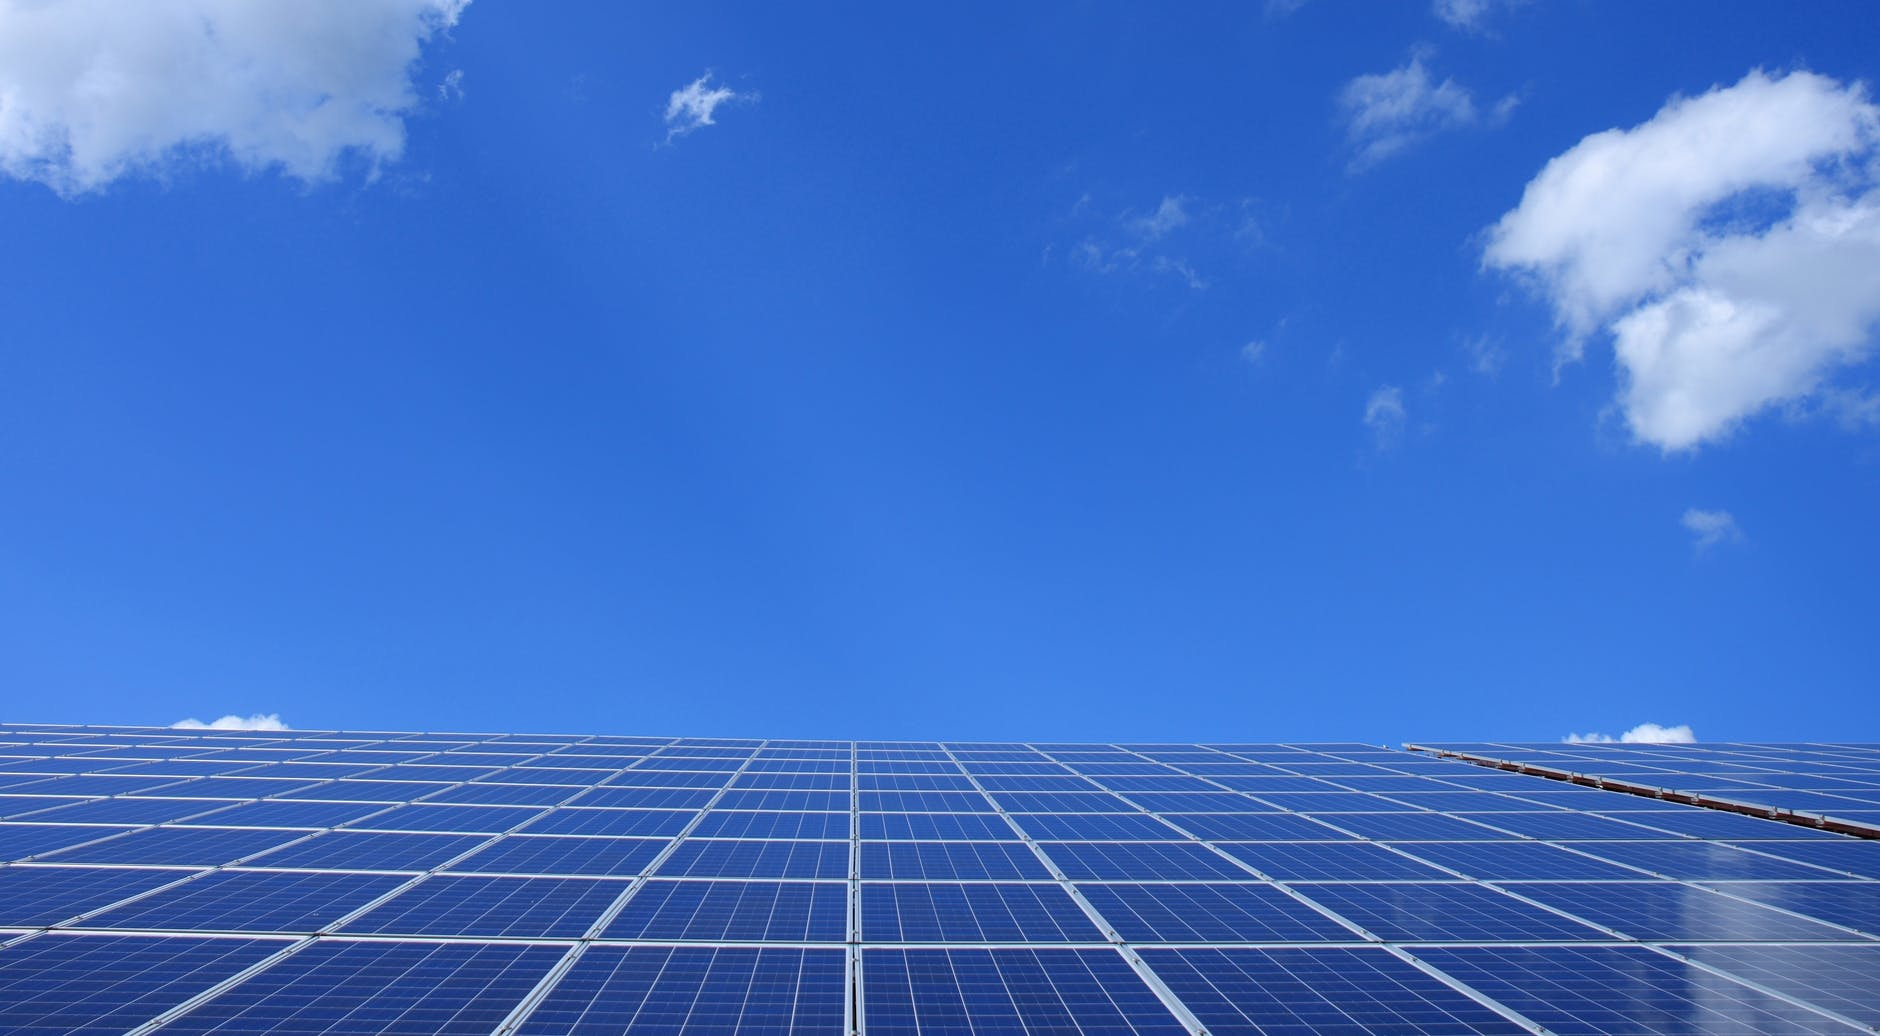 Kiara Smithee, Founder of Solar Solutions, shares her vision for the future of solar power sustainability.